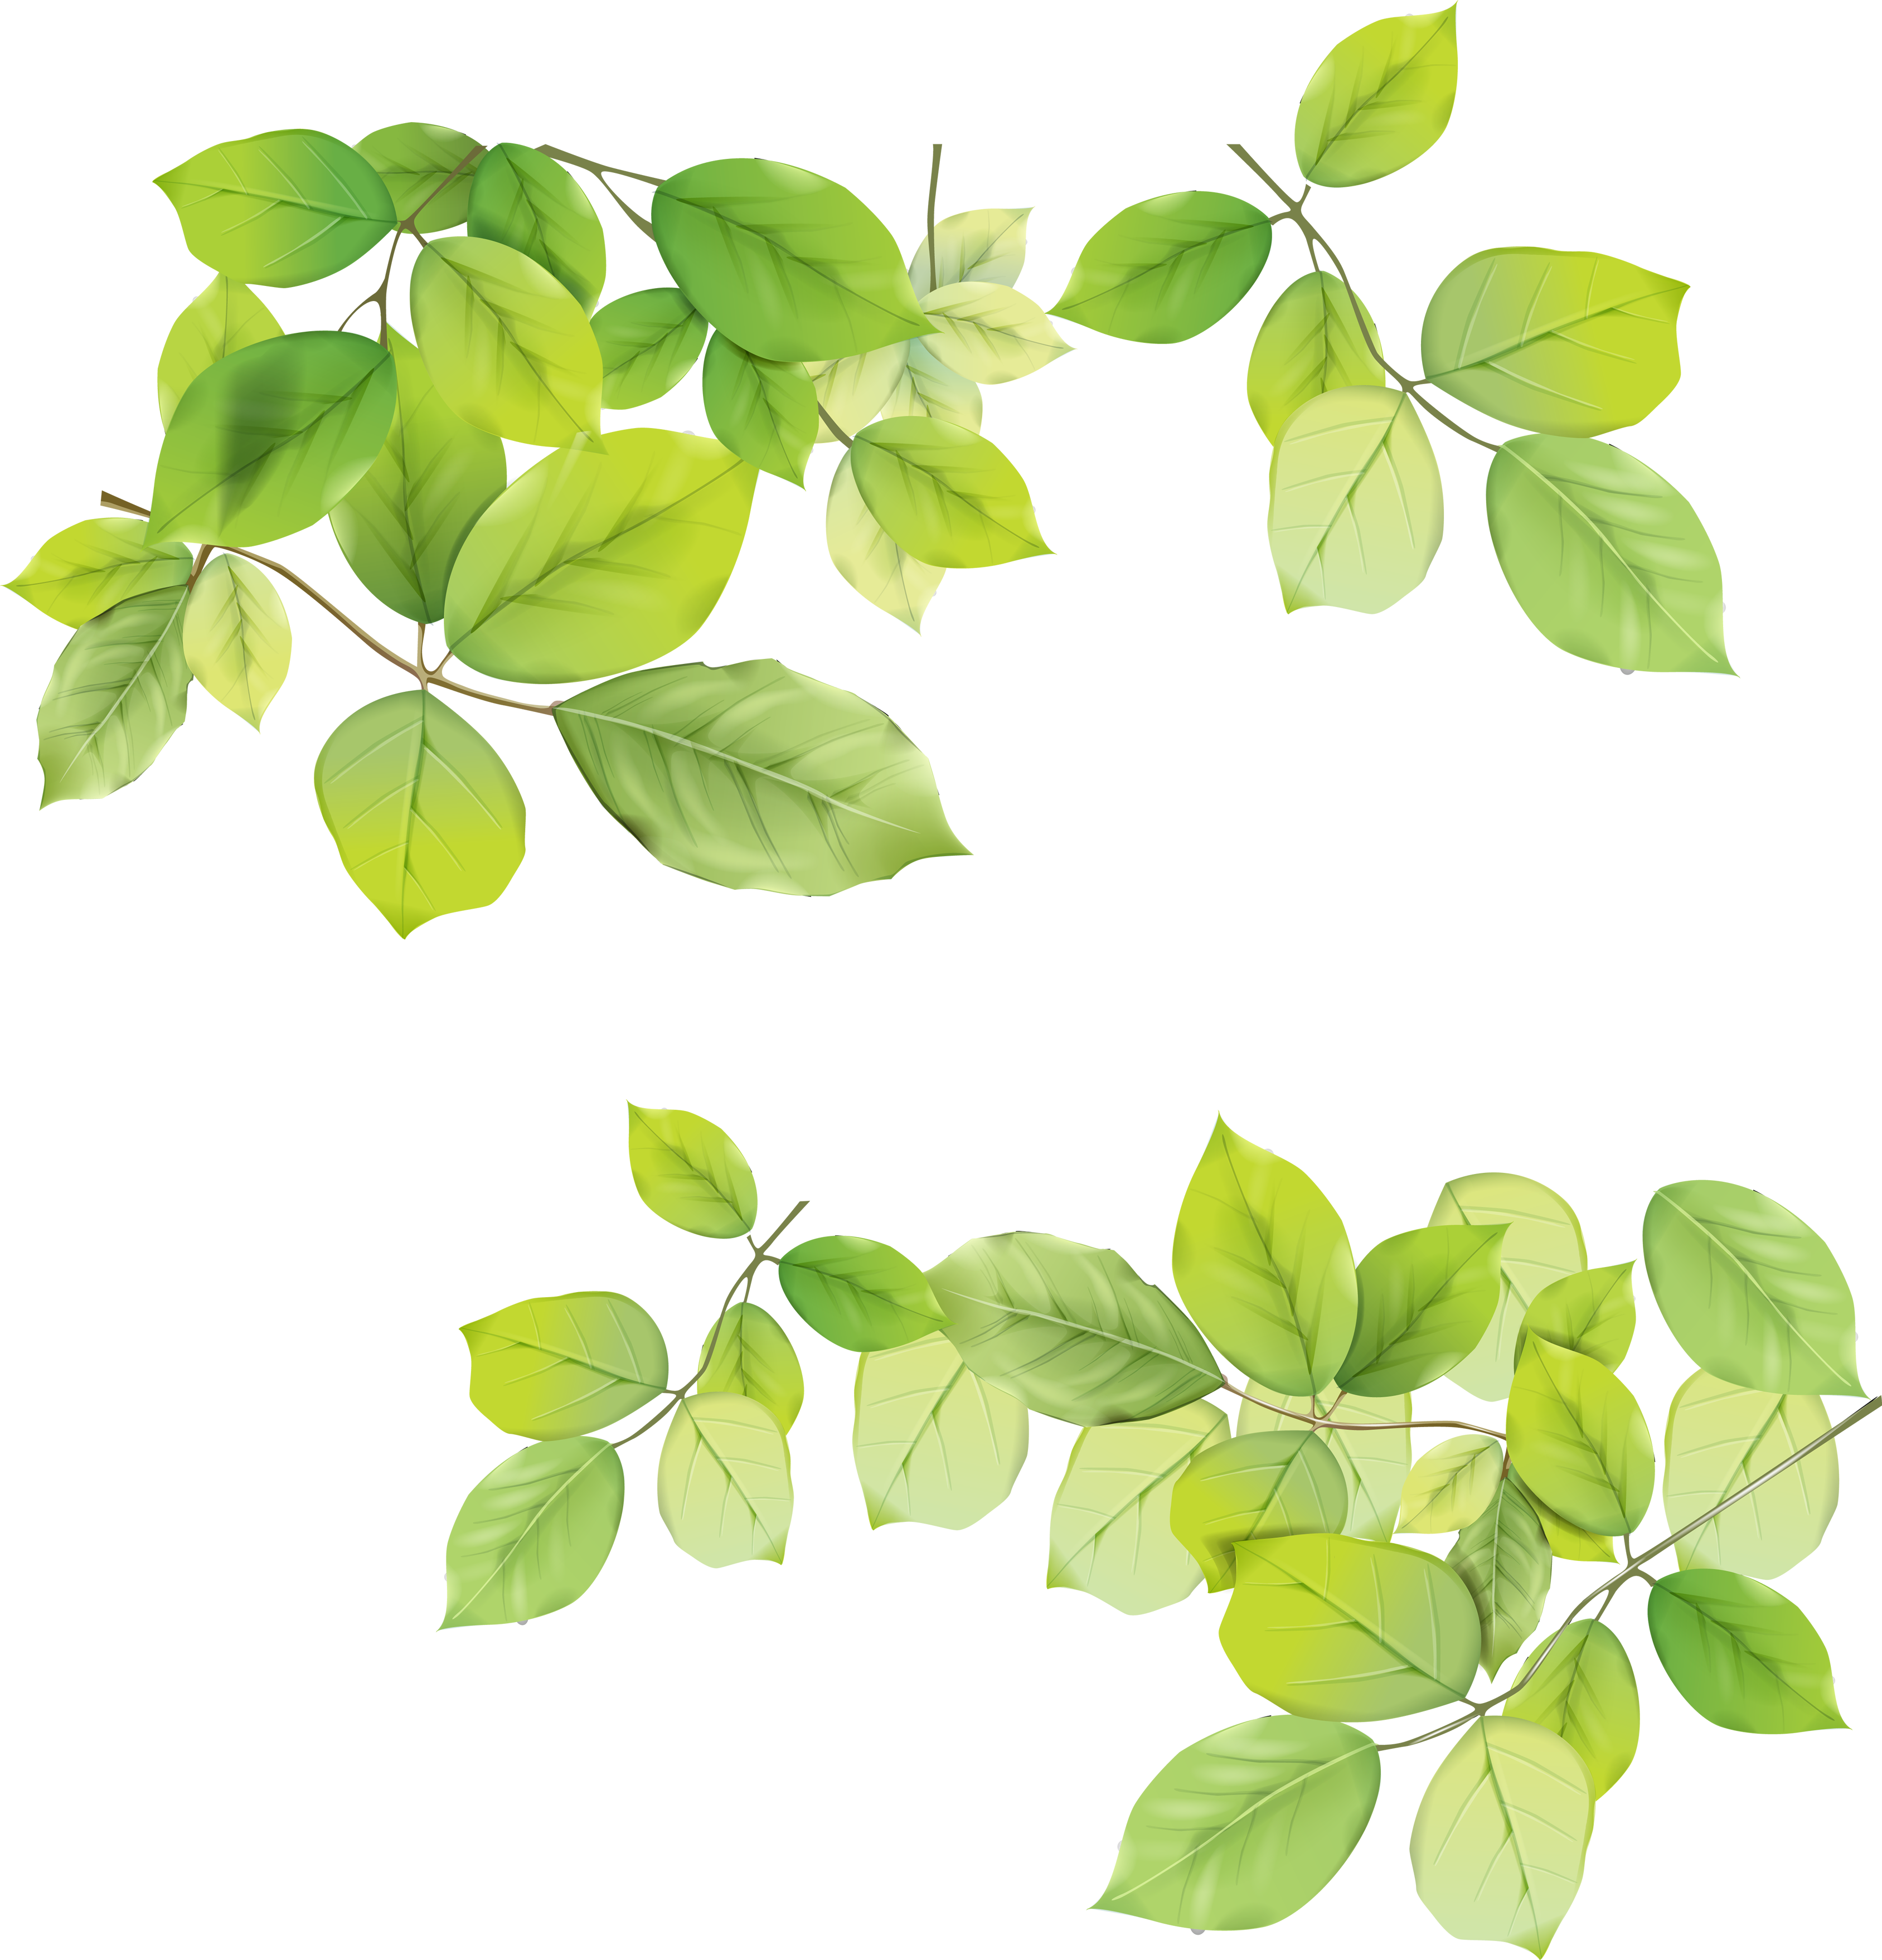 Green Leaf Png Background Green Branch Branches Clover Dark Green Green Leaves Png Leaves